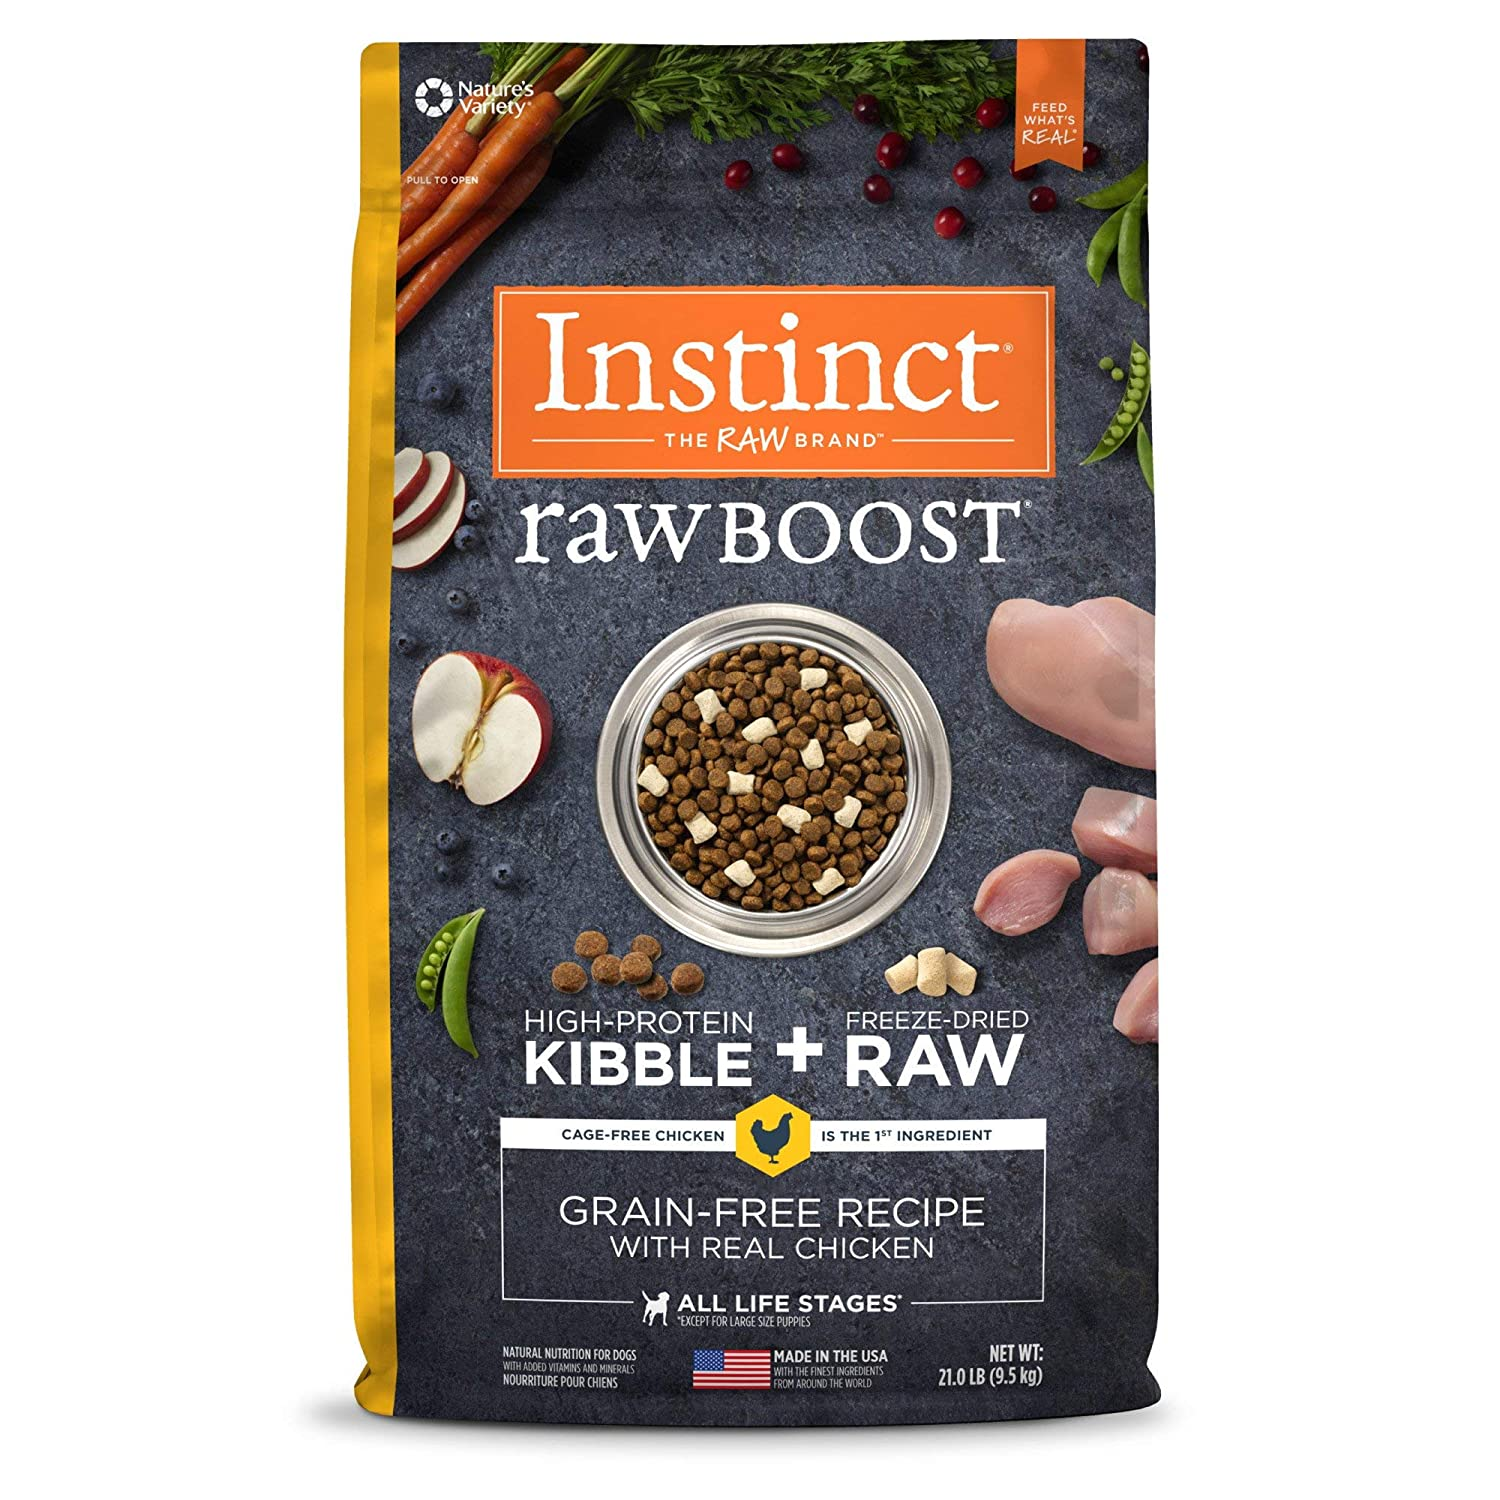 2.Instinct Raw Boost Grain-Free Recipe Natural Dry Dog Food